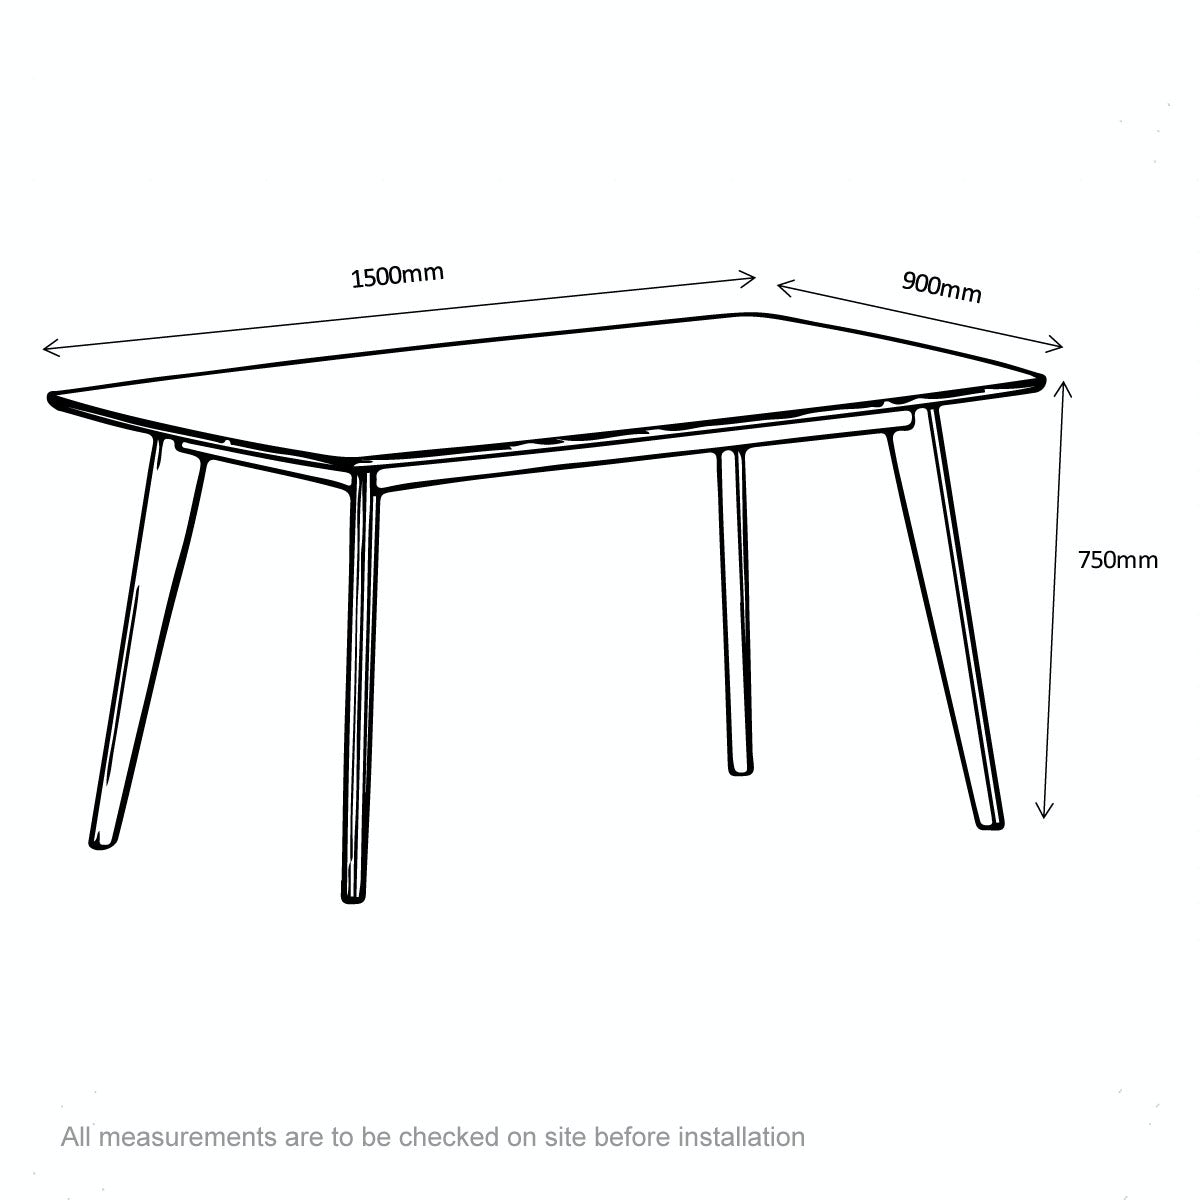 Dimensions for Archer dining table